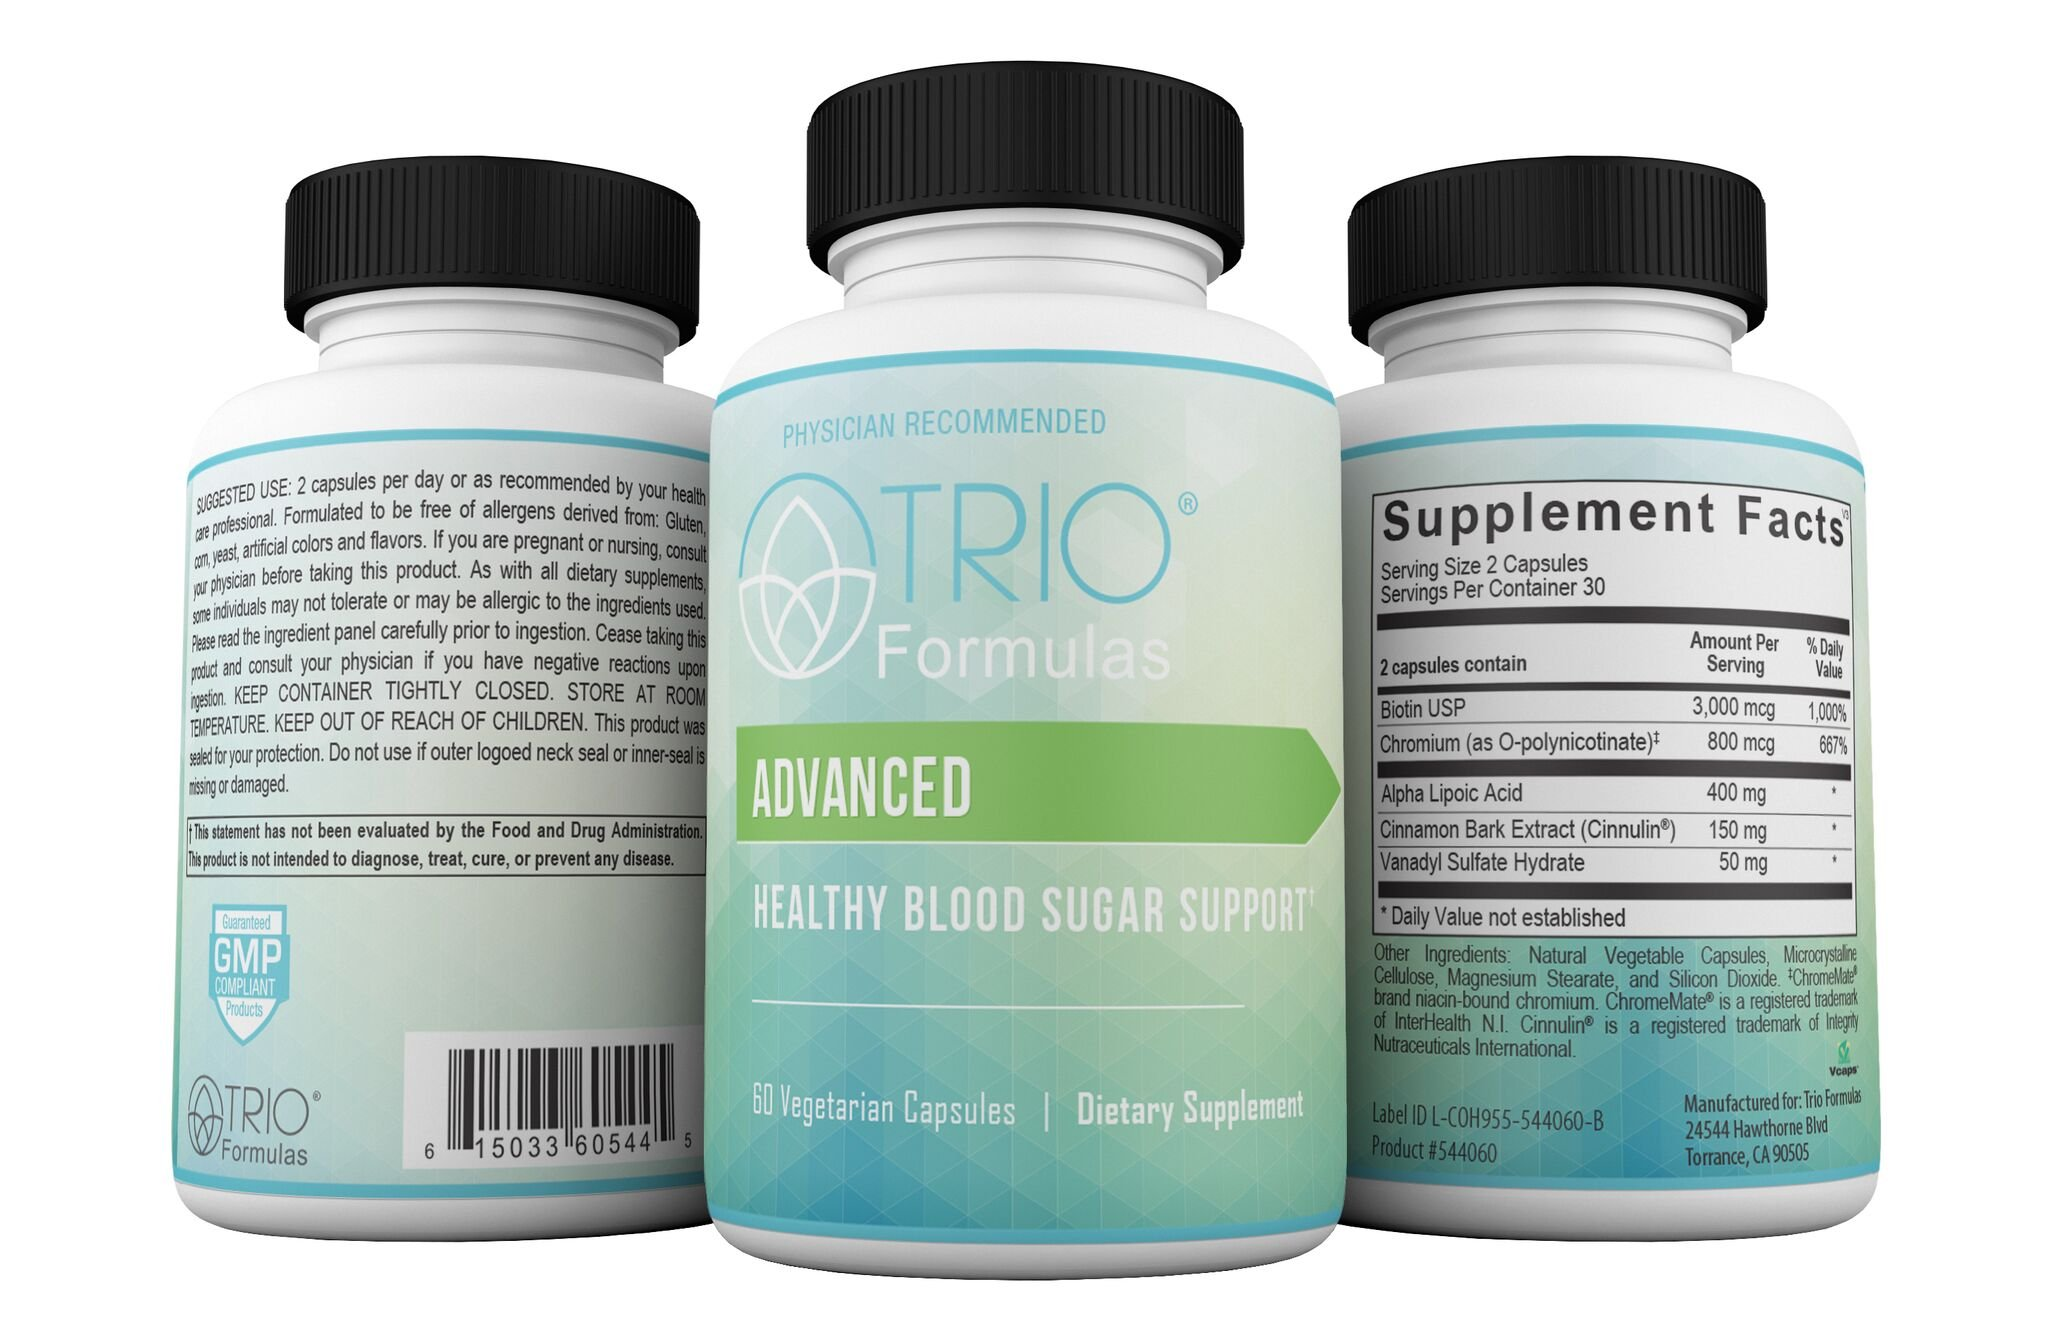 Doctor Recommended Advanced Healthy Blood Sugar-Glucose Supplement-Supreme Science Based Formula with Alpha Lipoic Acid-Chromium-Biotin-Cinnamon Bark Extract-Vanadyl Sulfate- 60 Vegetarian Capsules by Trio Formulas